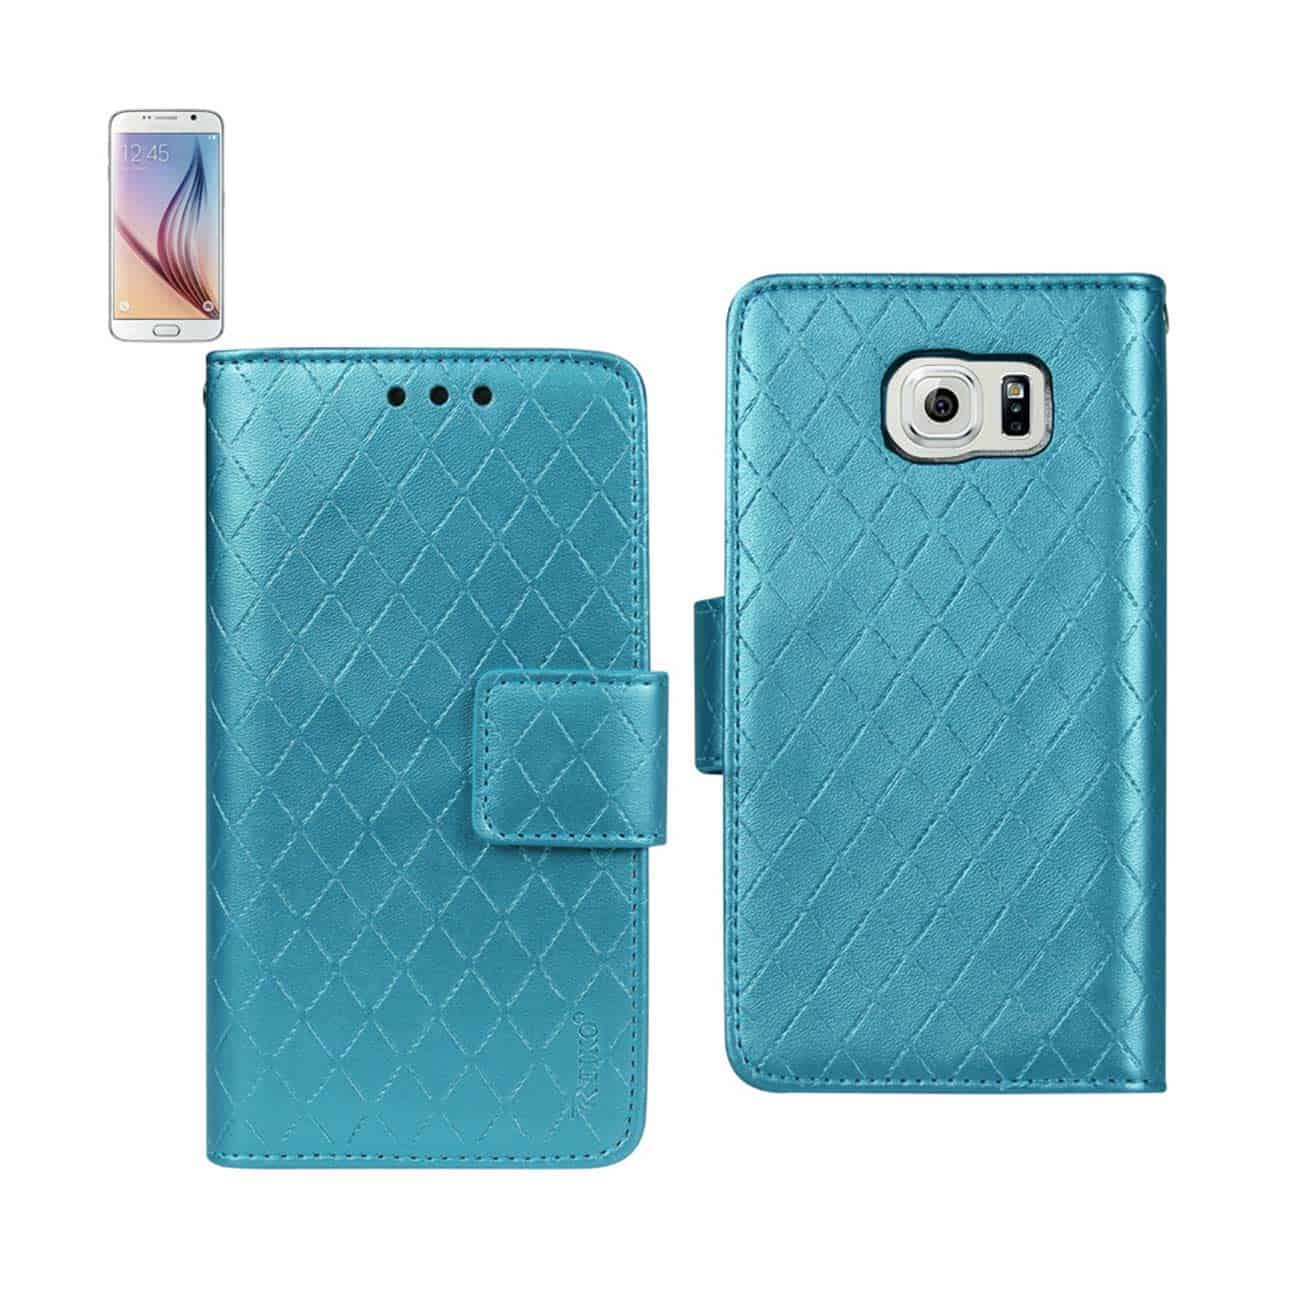 SAMSUNG GALAXY S6 RHOMBUS WALLET CASE IN BLUE